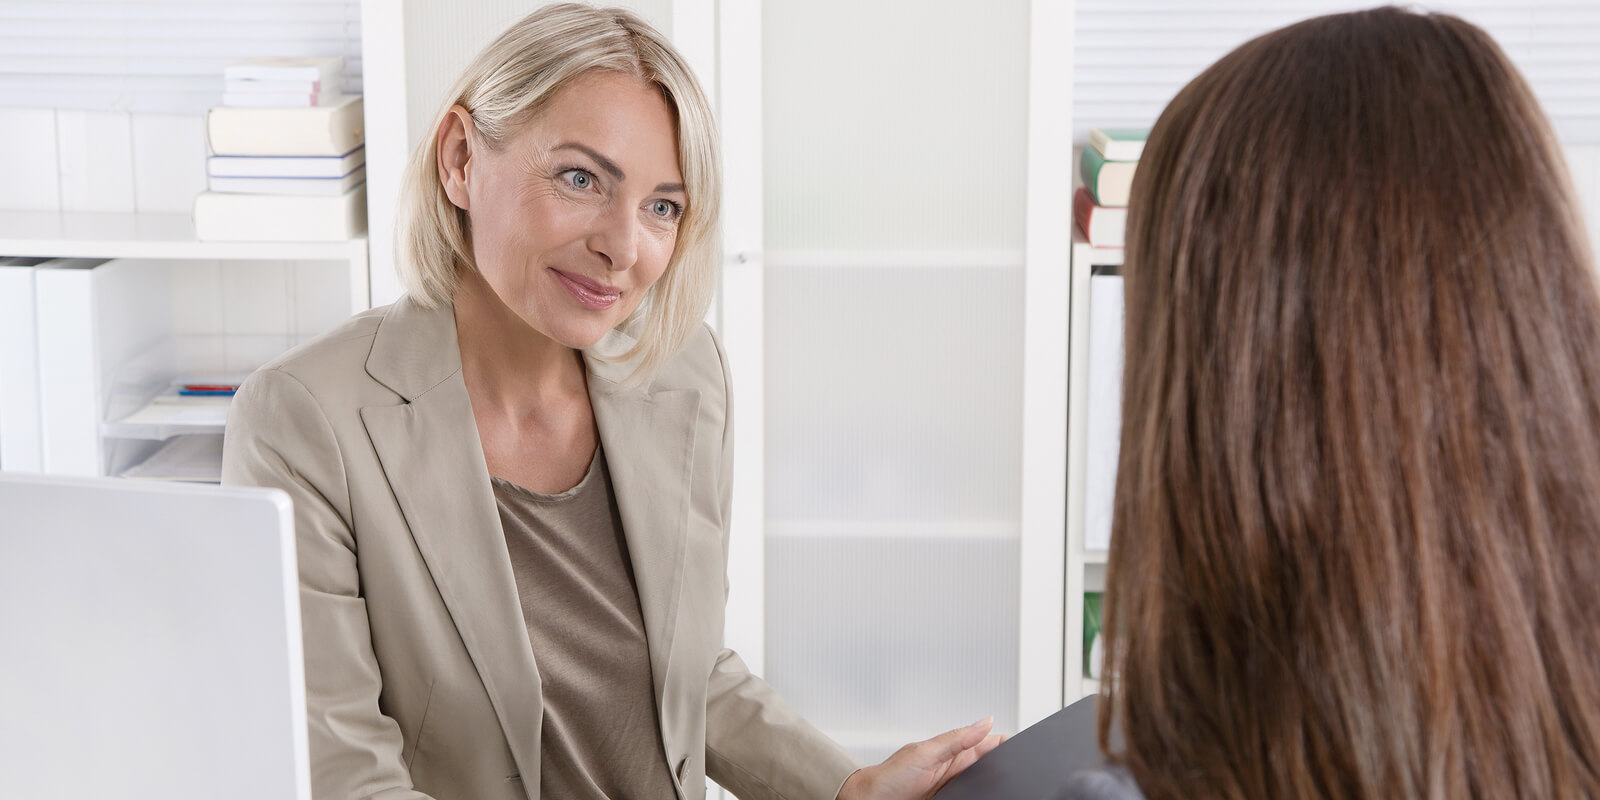 negotiating salary and benefits 5 questions women should ask negotiating salary and benefits 5 questions women should ask flexjobs